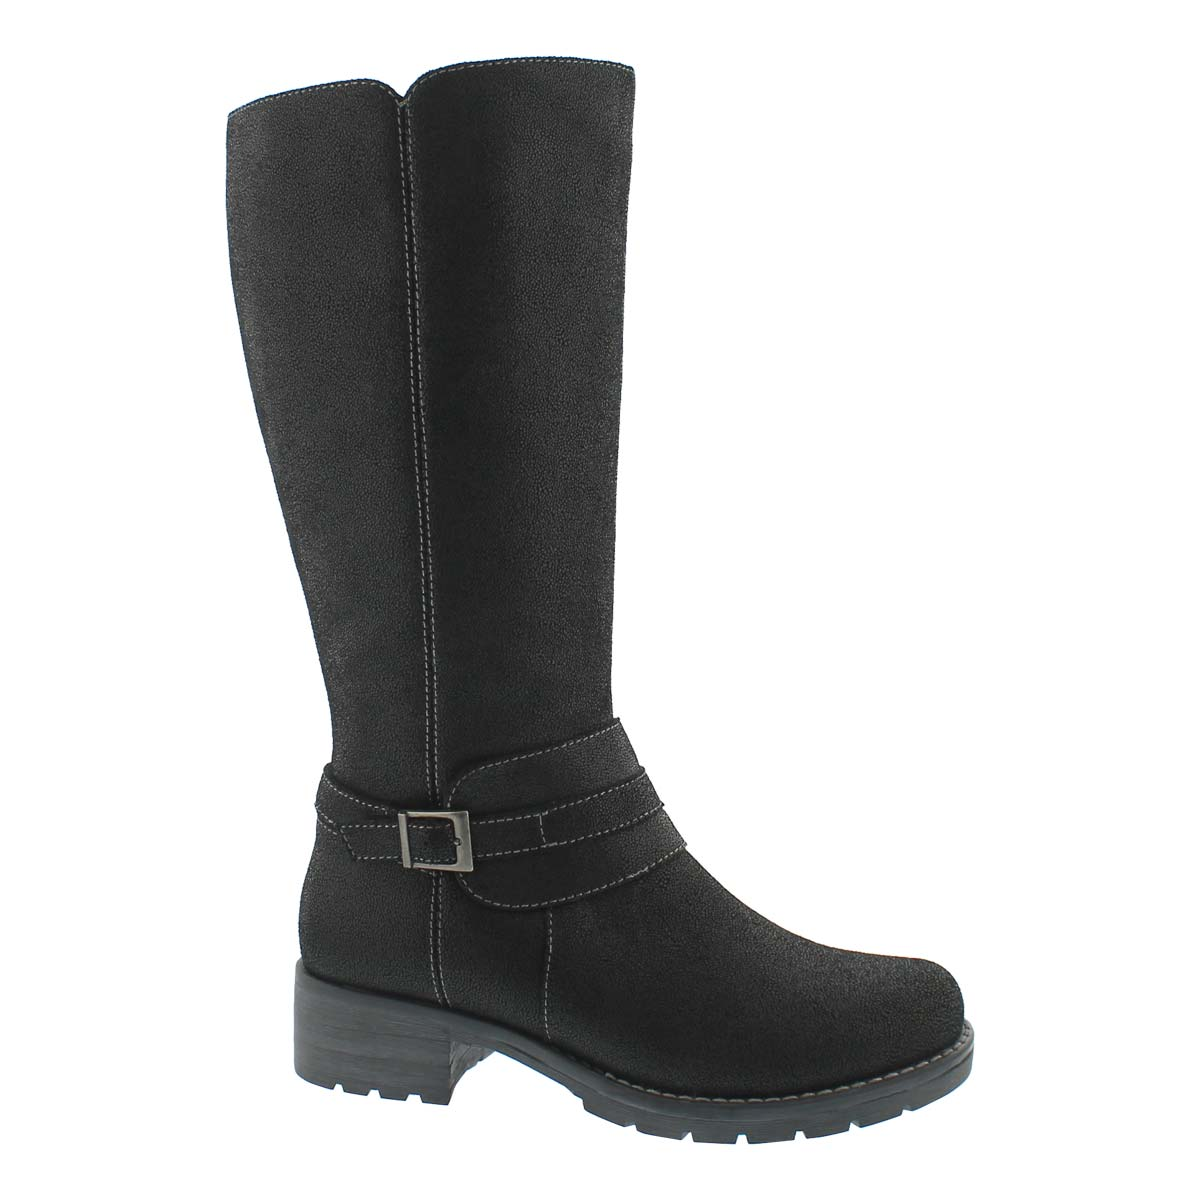 Women's DOMINIQUE 2 black tall riding boots